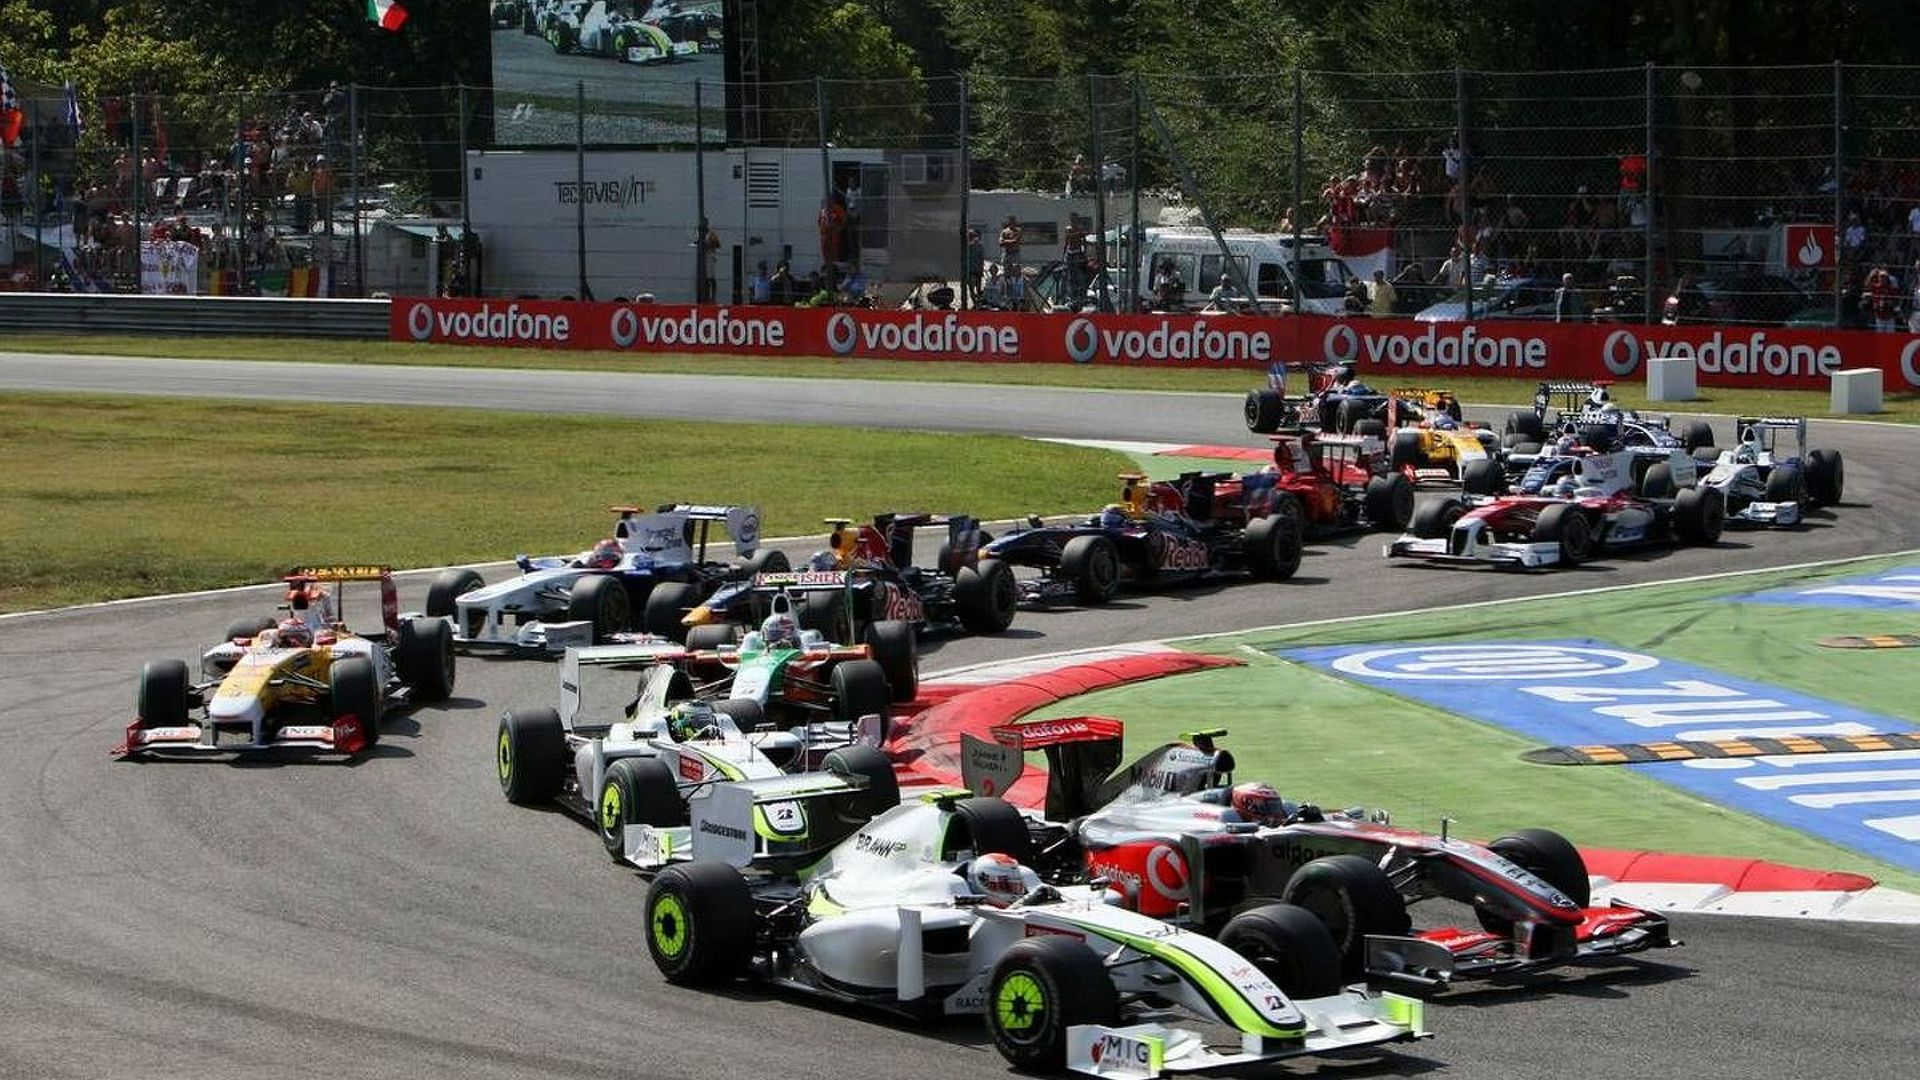 Third cars possible for young drivers - Head